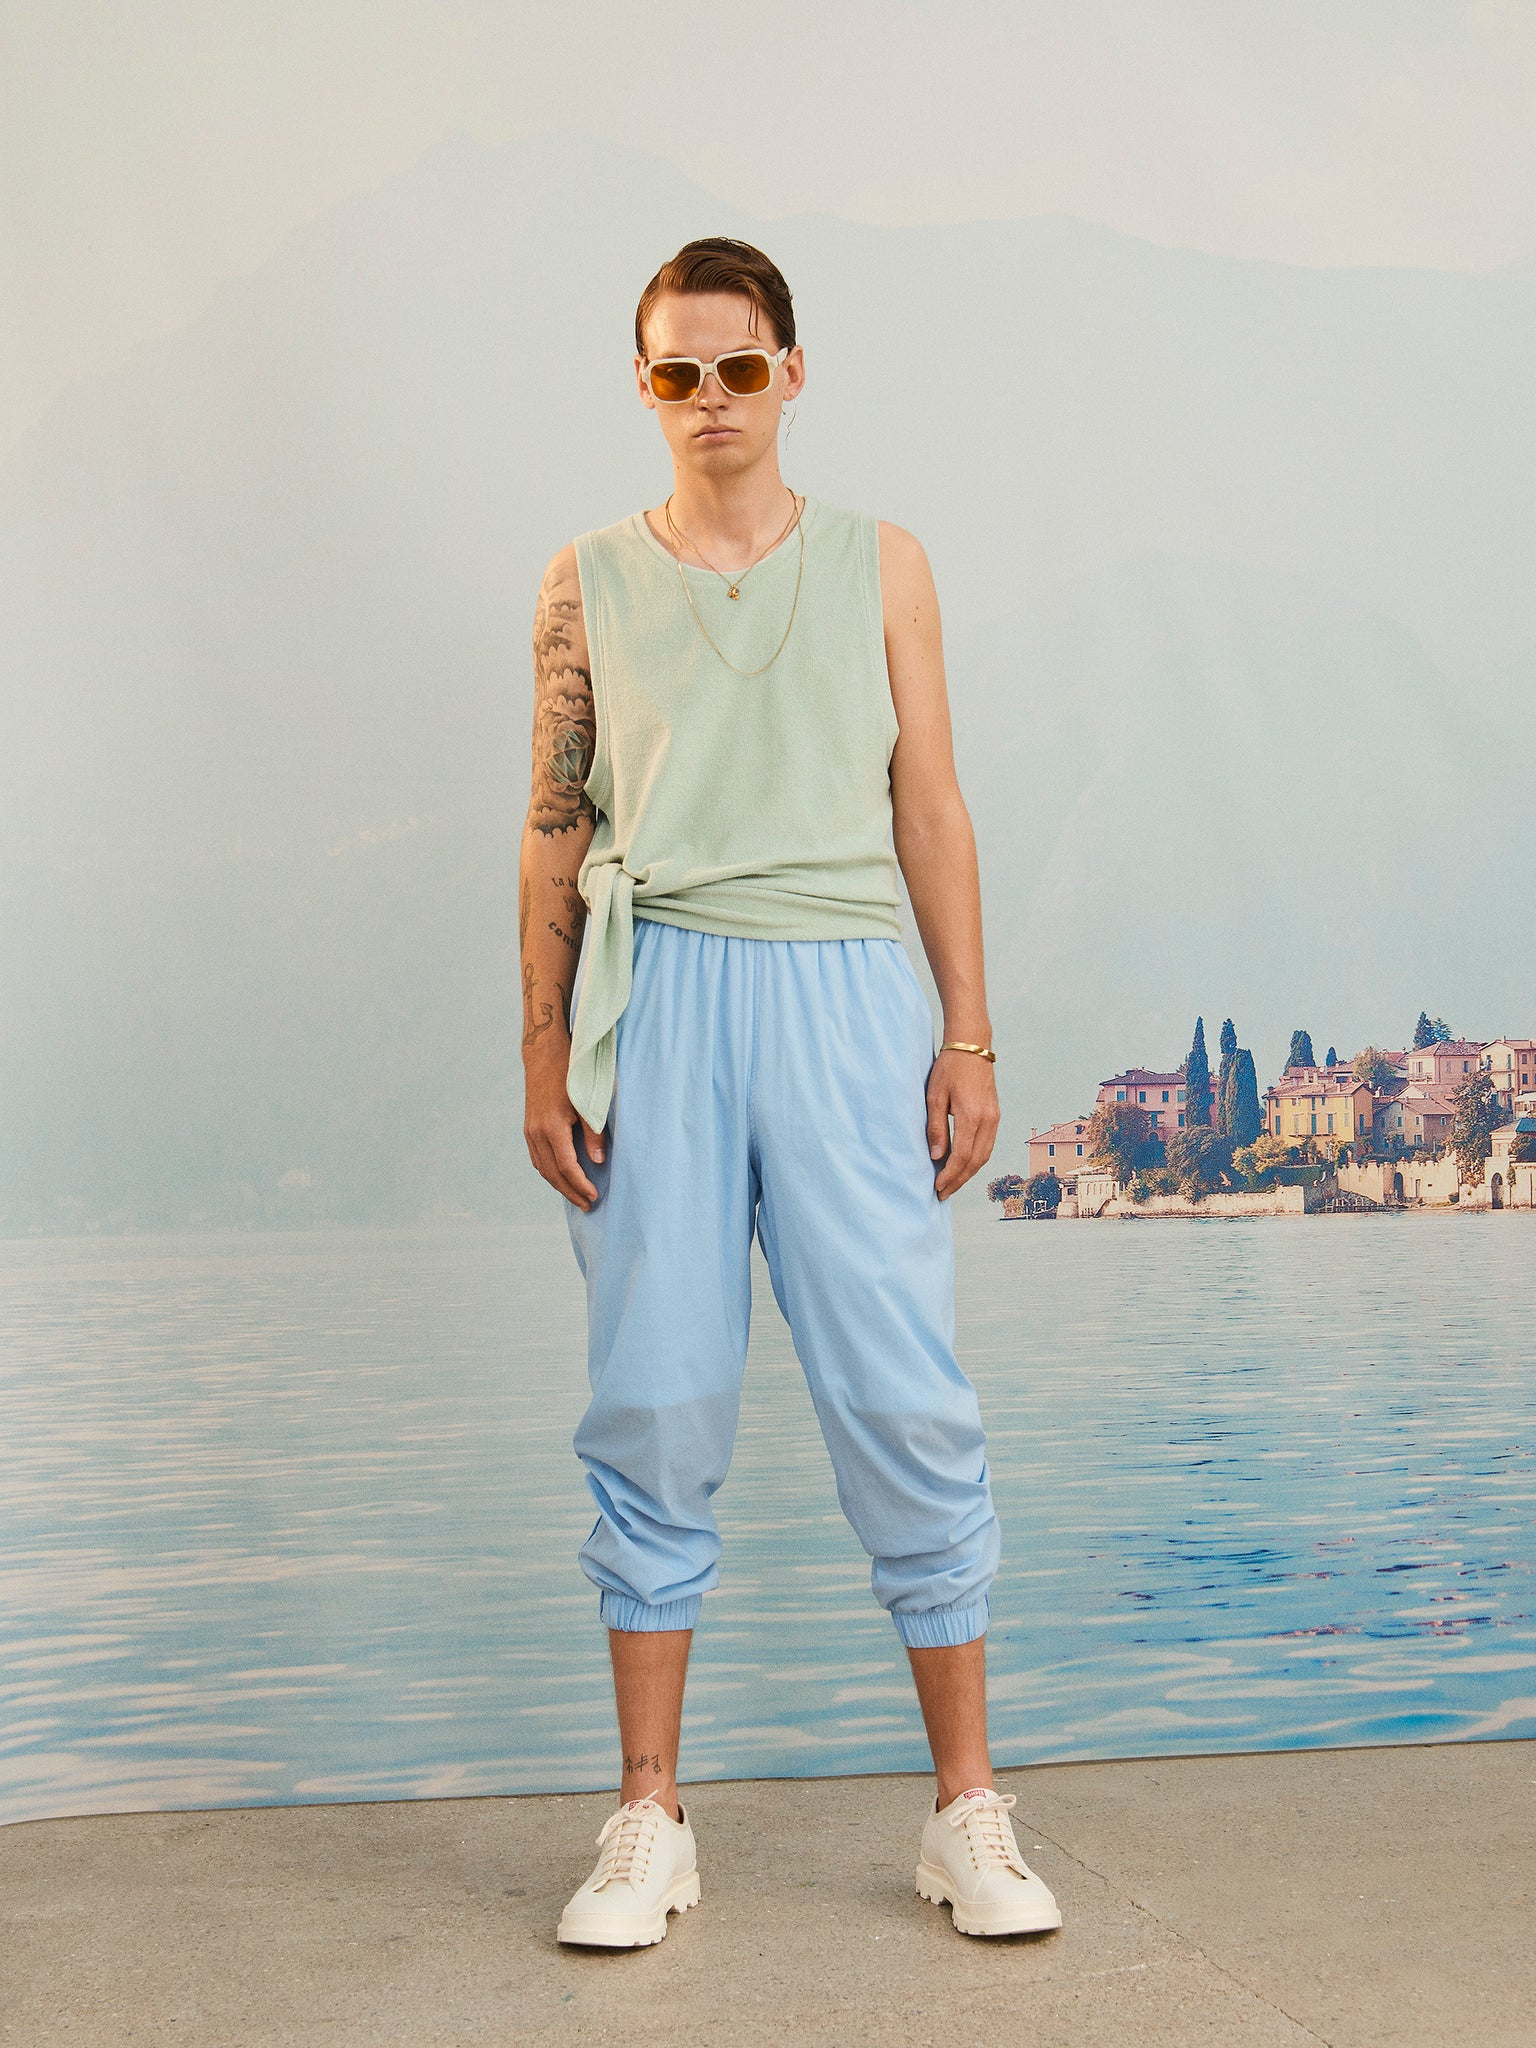 martin Asbjorn ma terry cotton tank-top terrycloth menswear ss20 spring20 boring lookbook